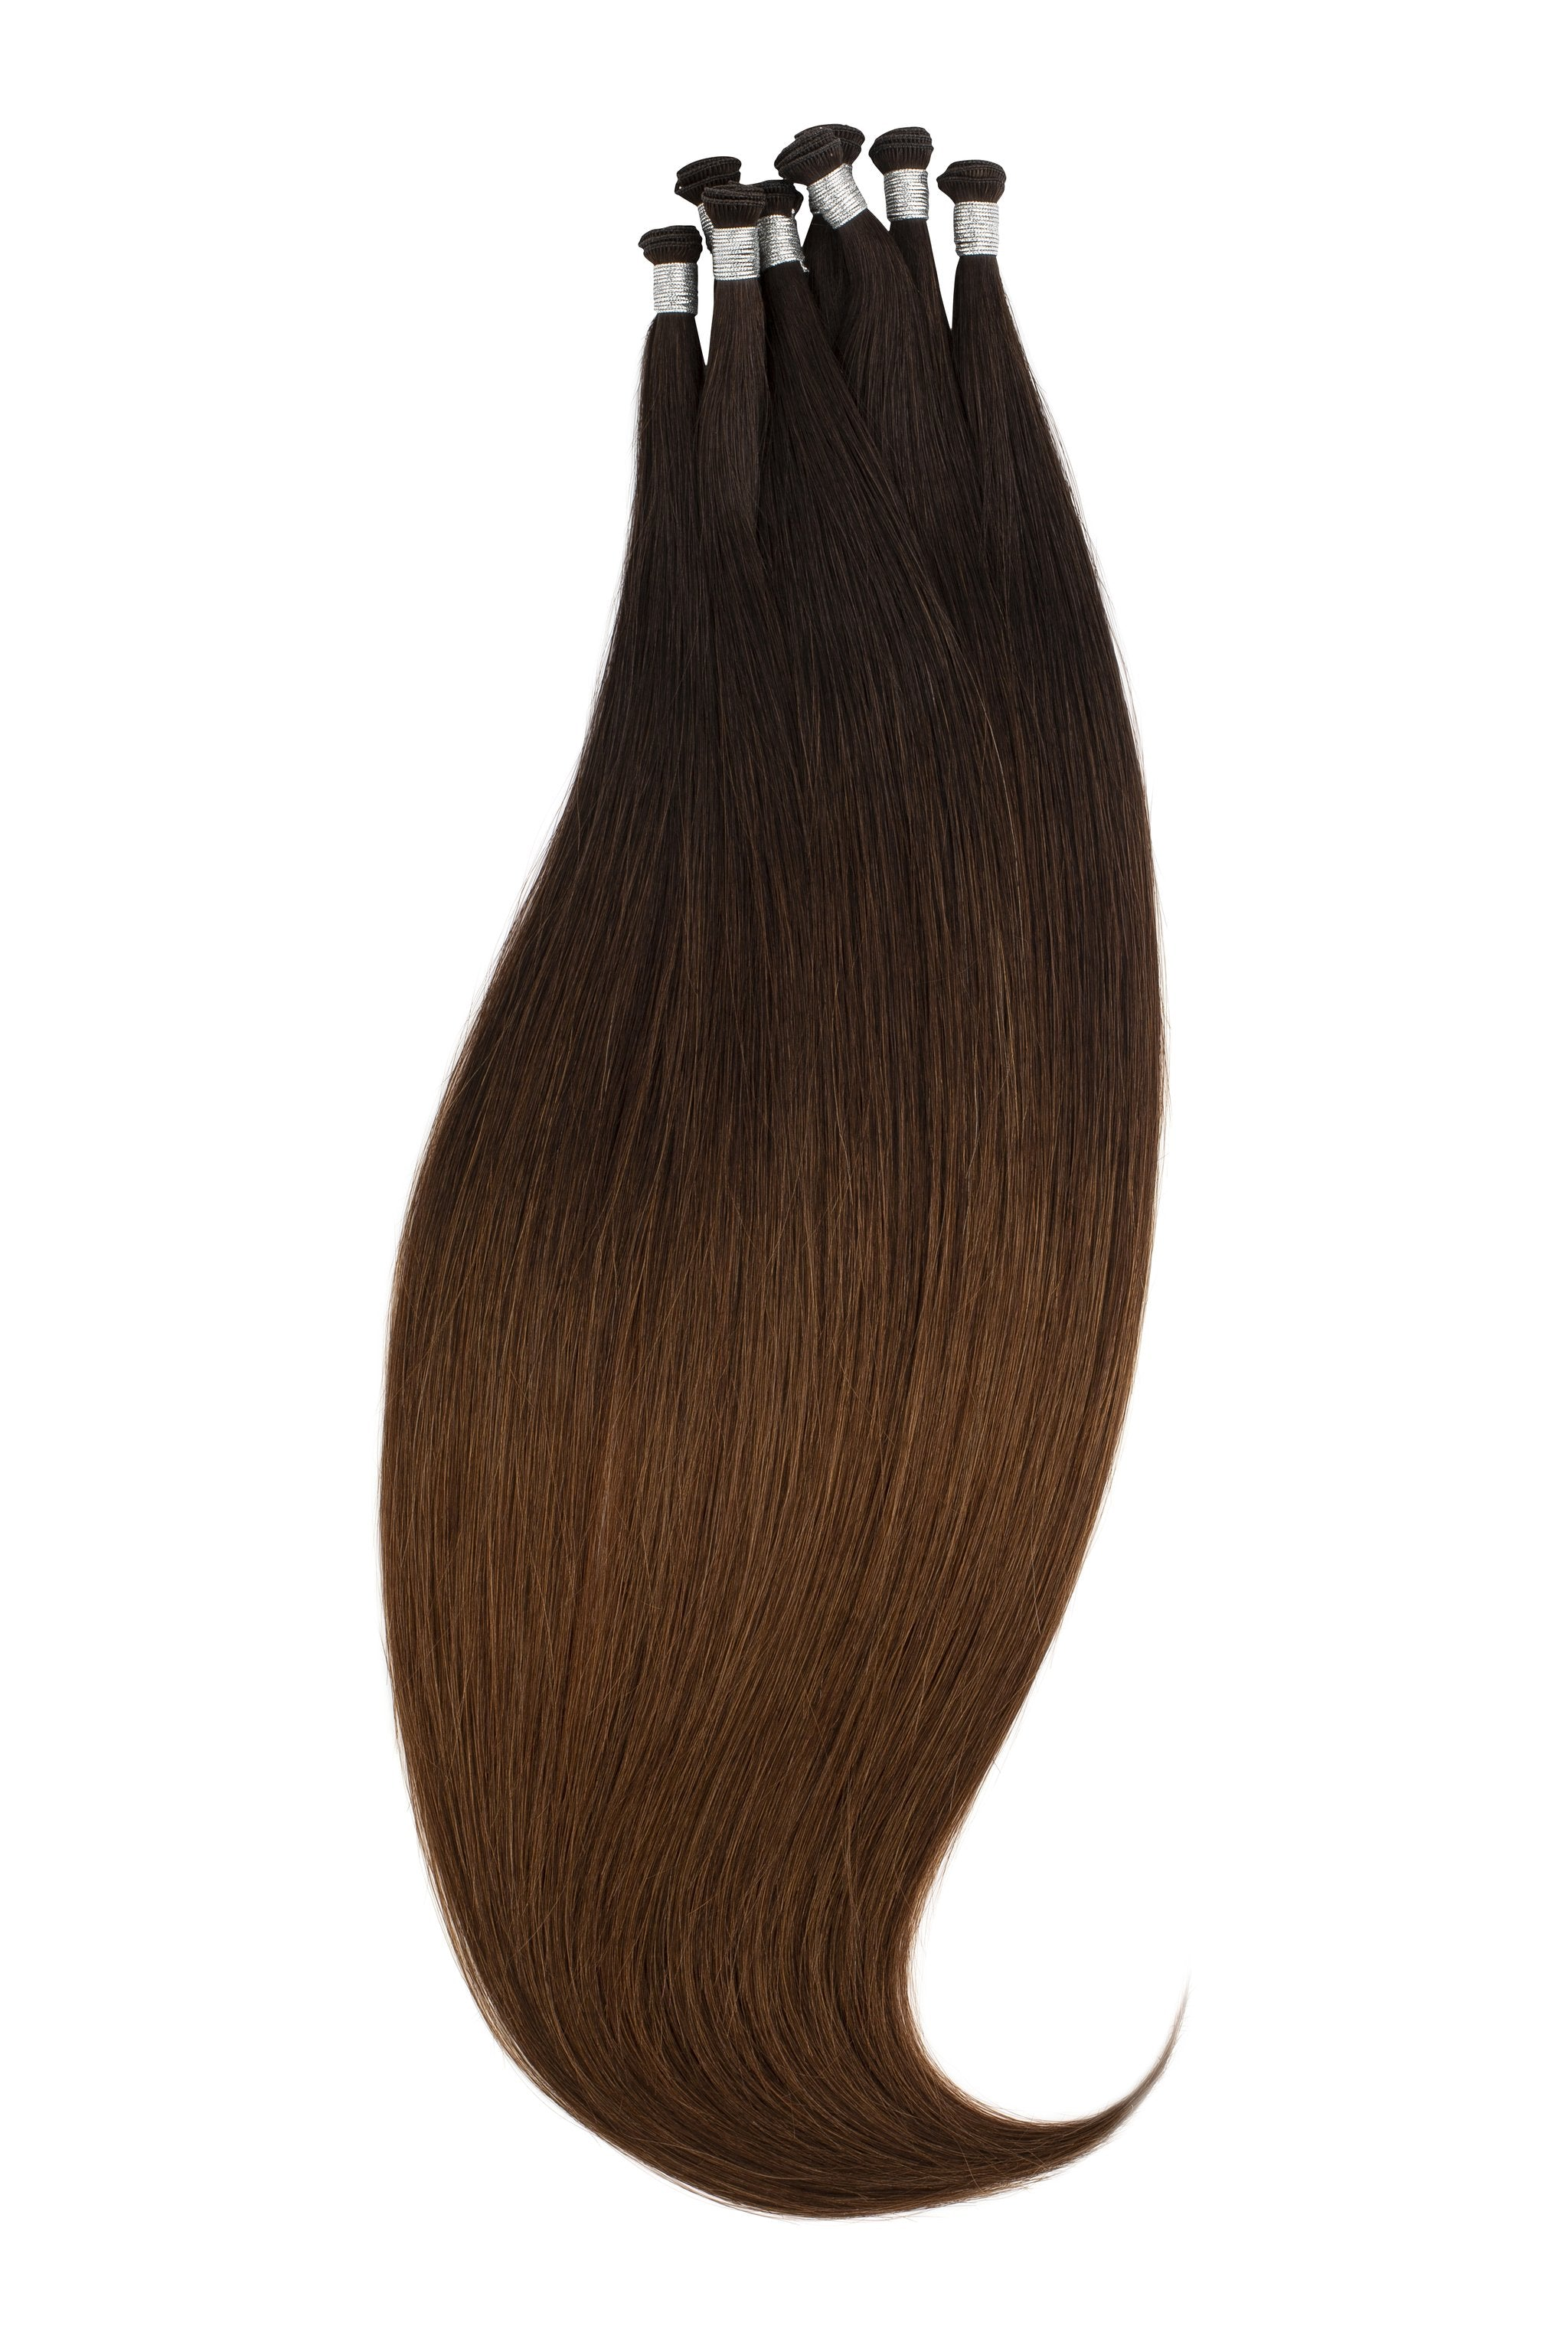 Chocolate Dip Ombré (1B/2/4) Hand-Tied Wefts braidless sew in